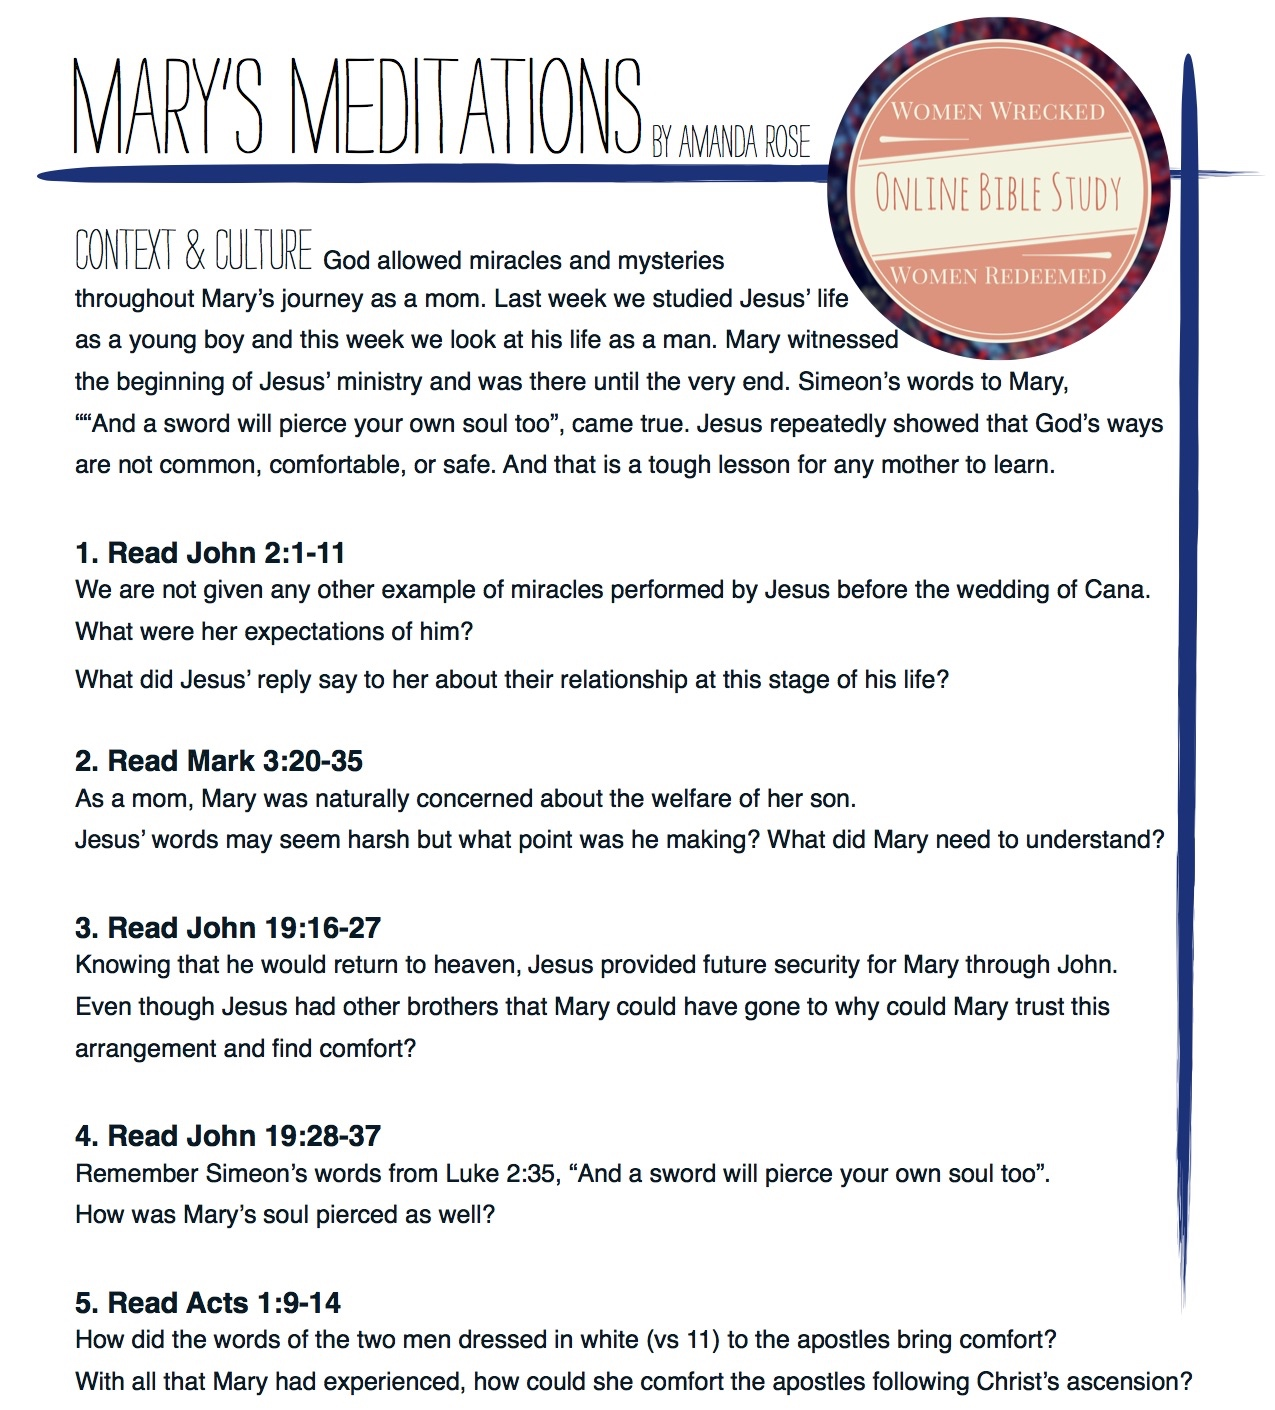 WWWR Marys Meditations